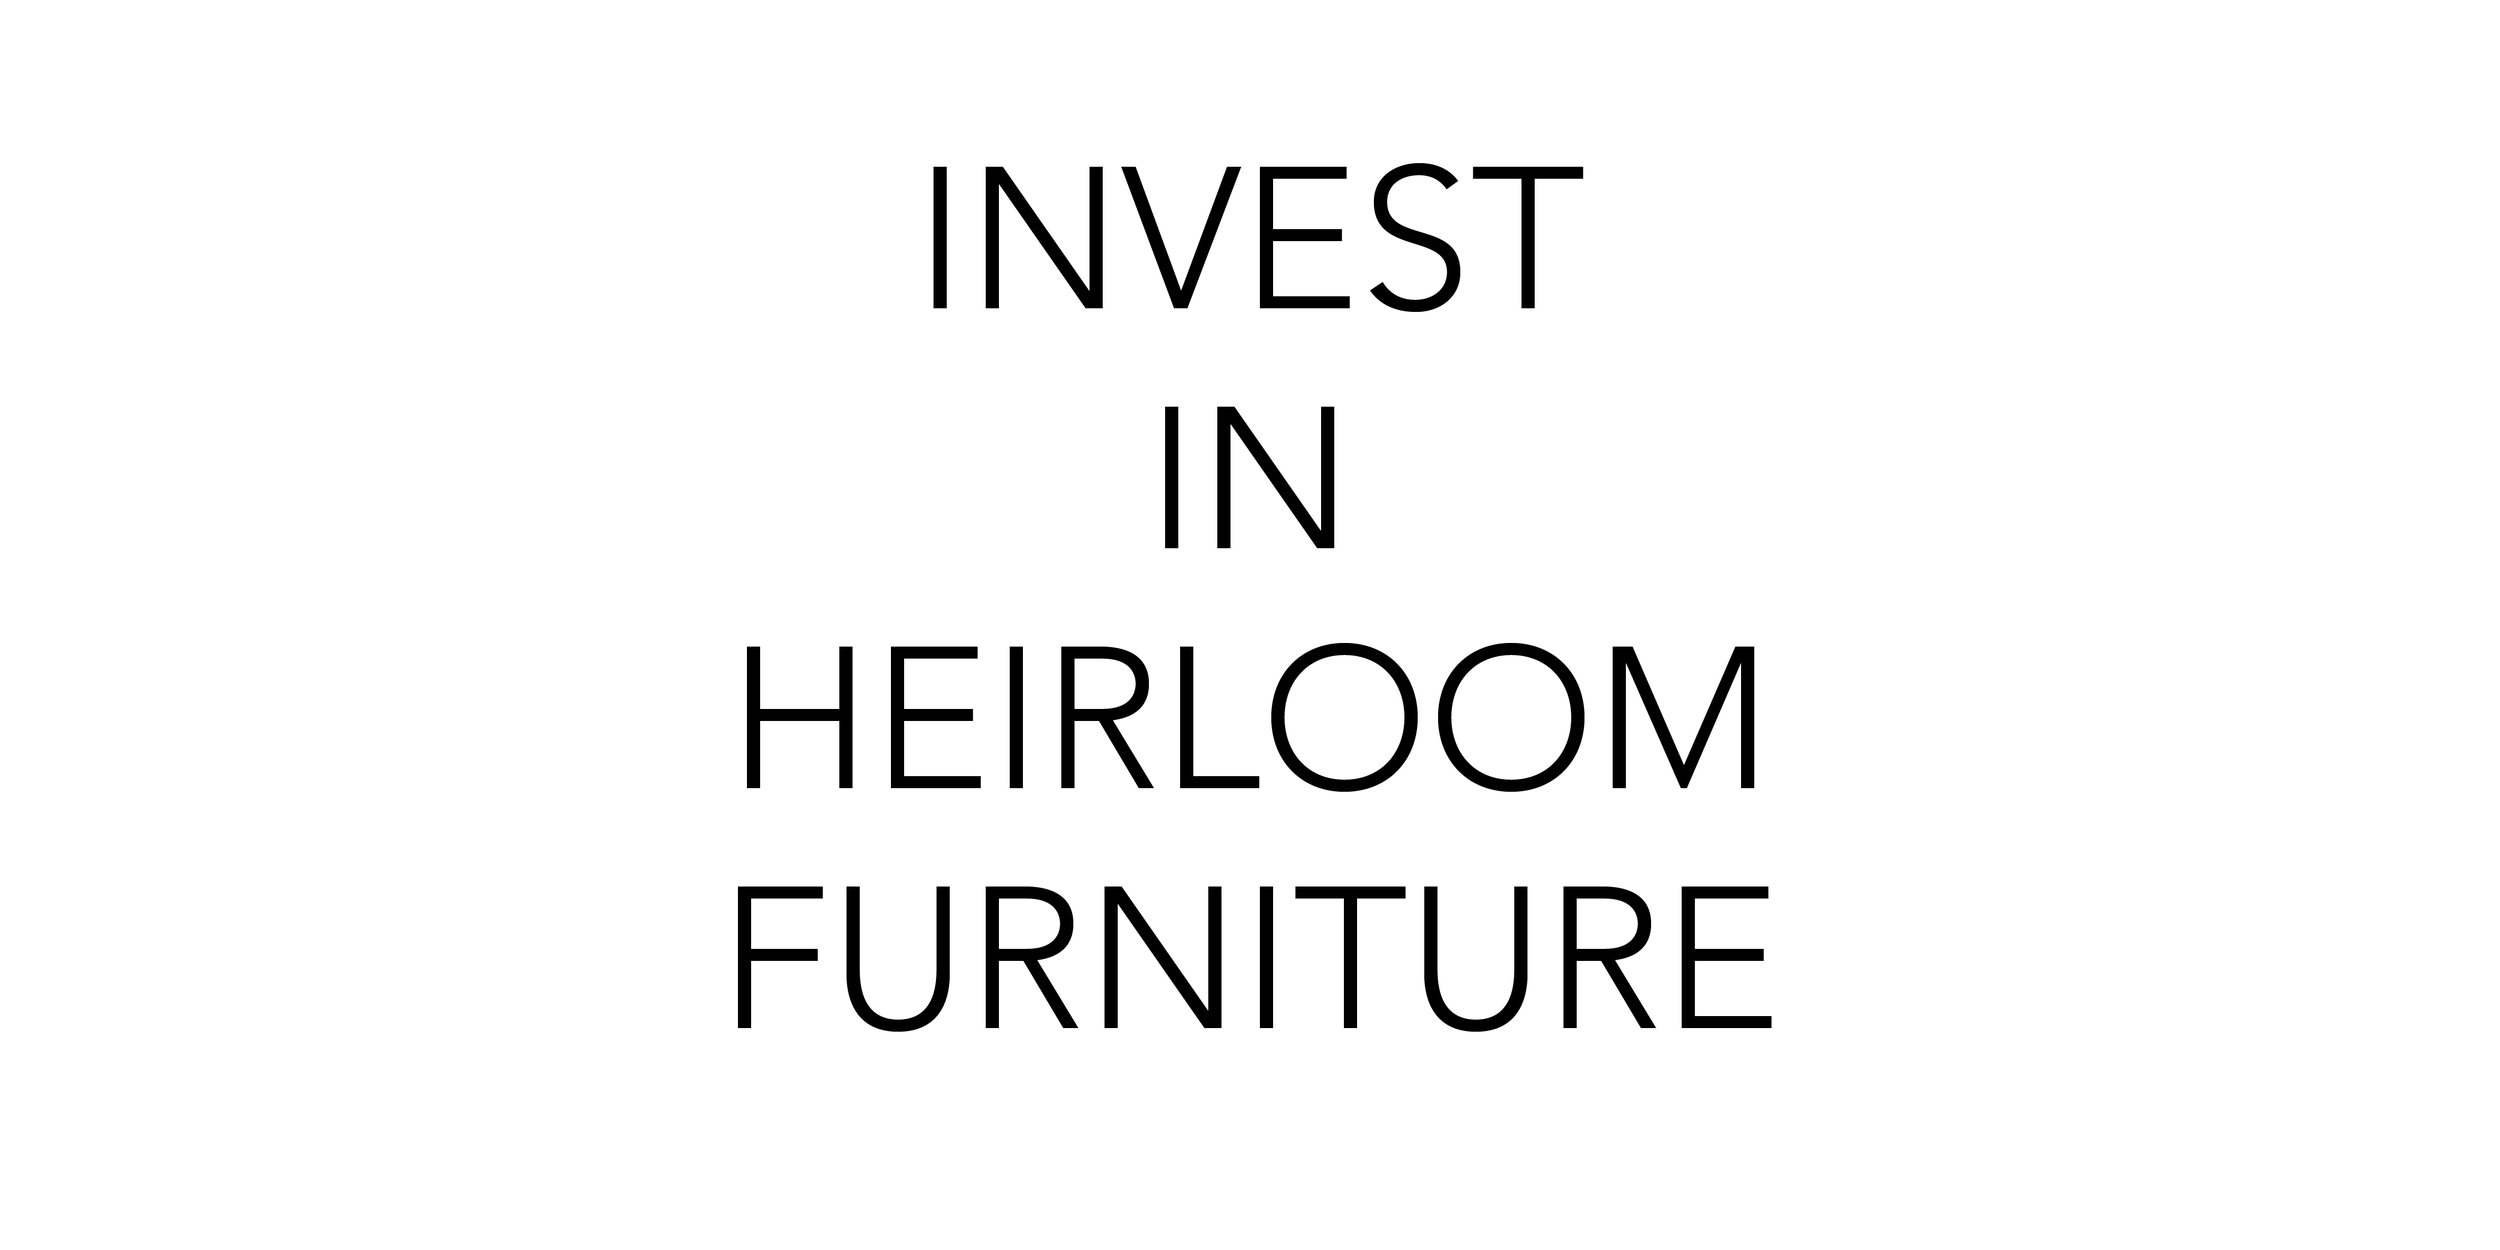 Invest In Heirloom Furniture